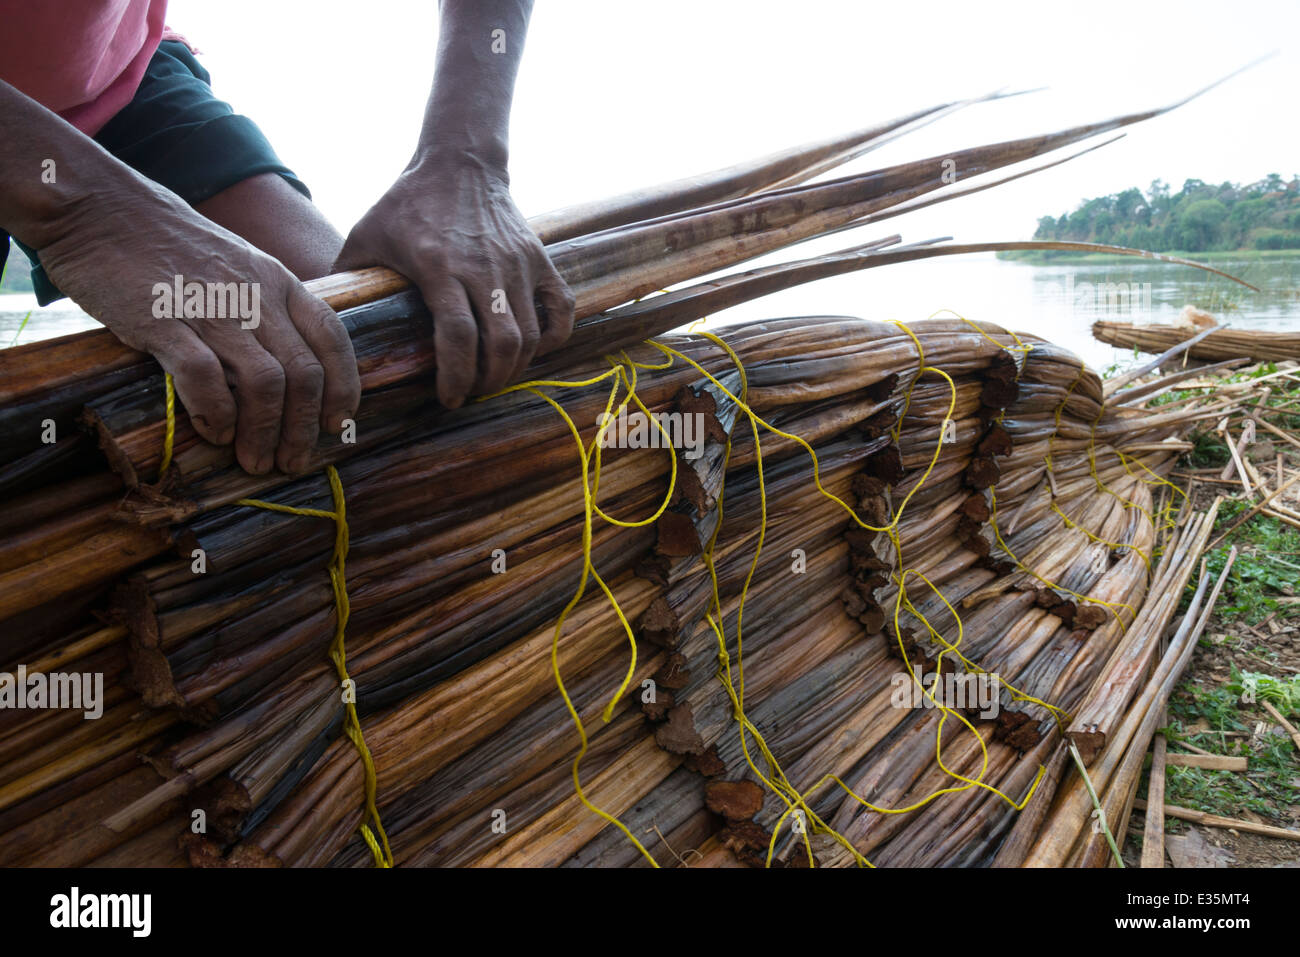 Making of a papyrus small boat. Zege peninsula. Lake Tana. Northern Ethiopia. - Stock Image